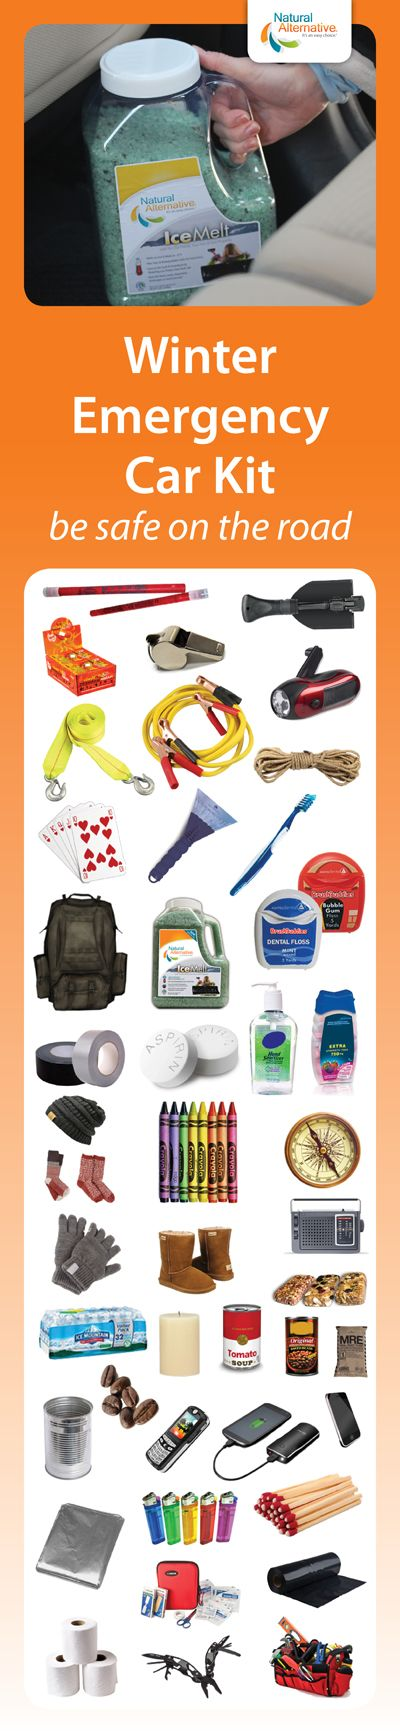 Winter weather can be unpredictable. Assemble this #Winter Emergency Car Kit and leave it in your car for peace of mind. #Preparedness